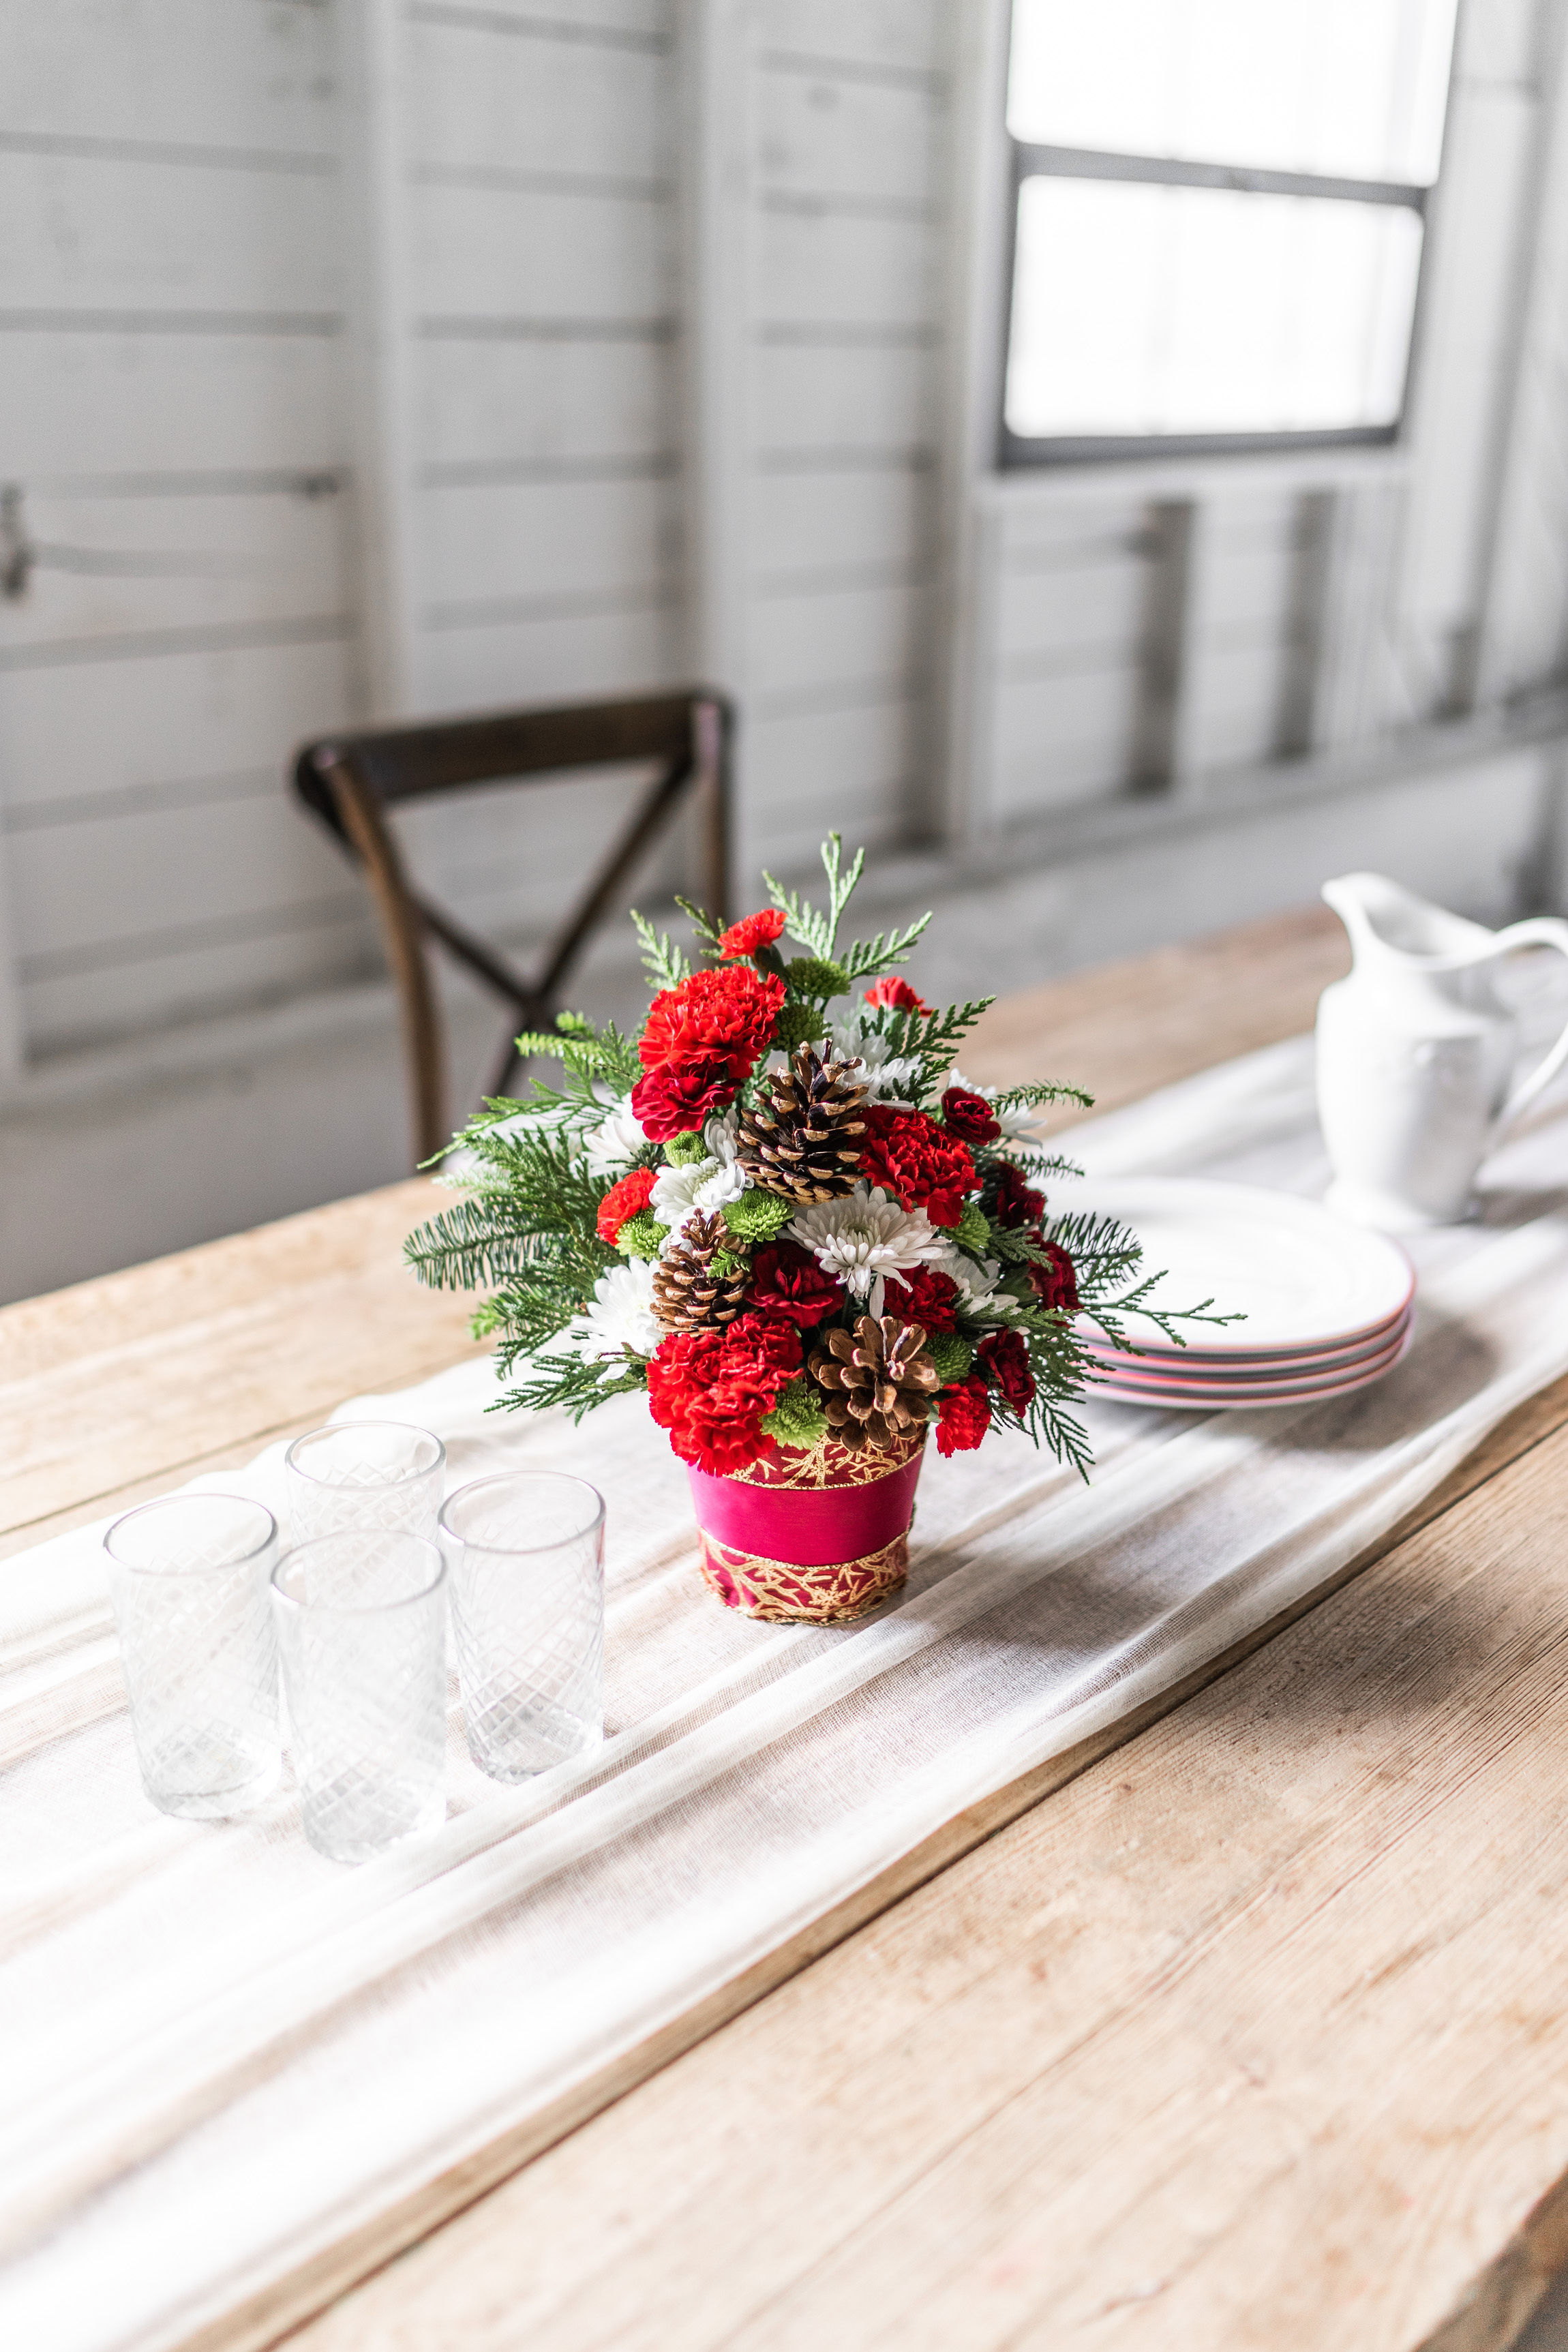 Cute Christmas Centerpiece with Carnations